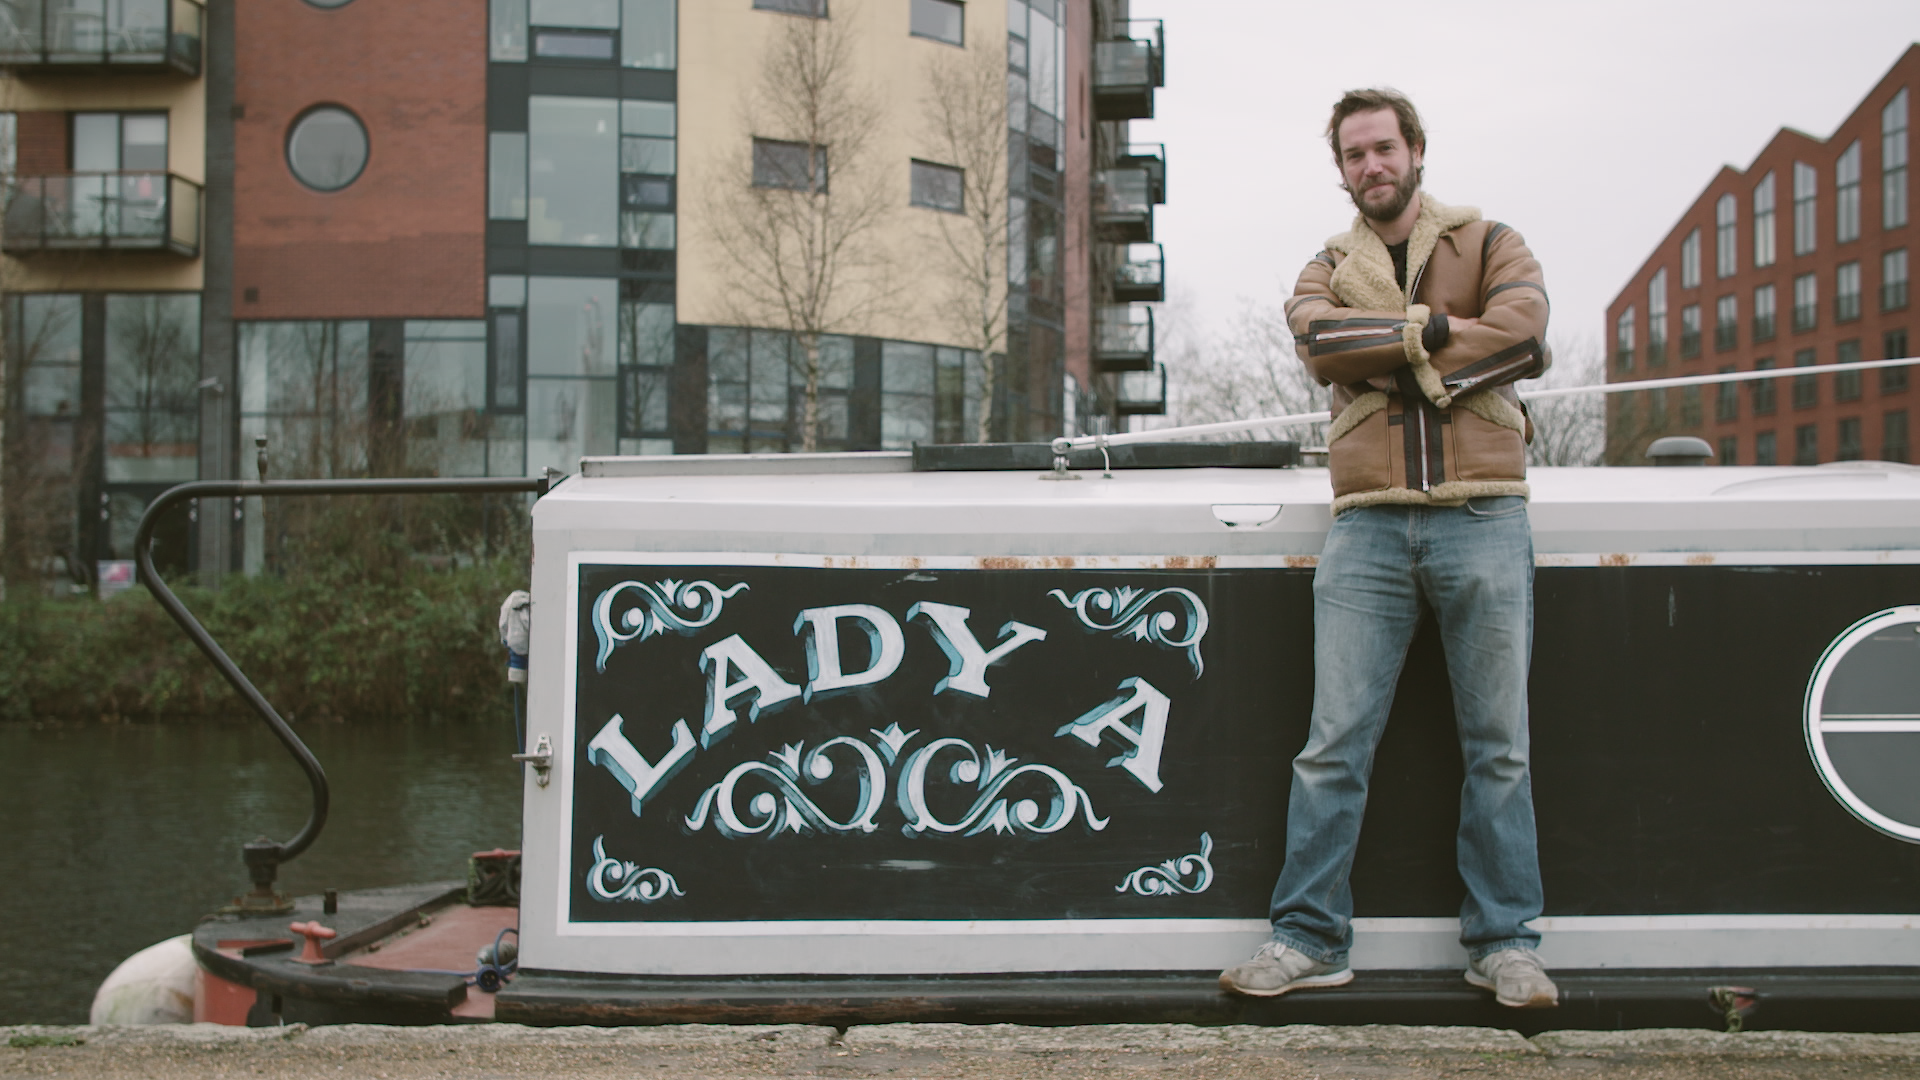 James Levelle stands in front of a narrowboat called Lady A